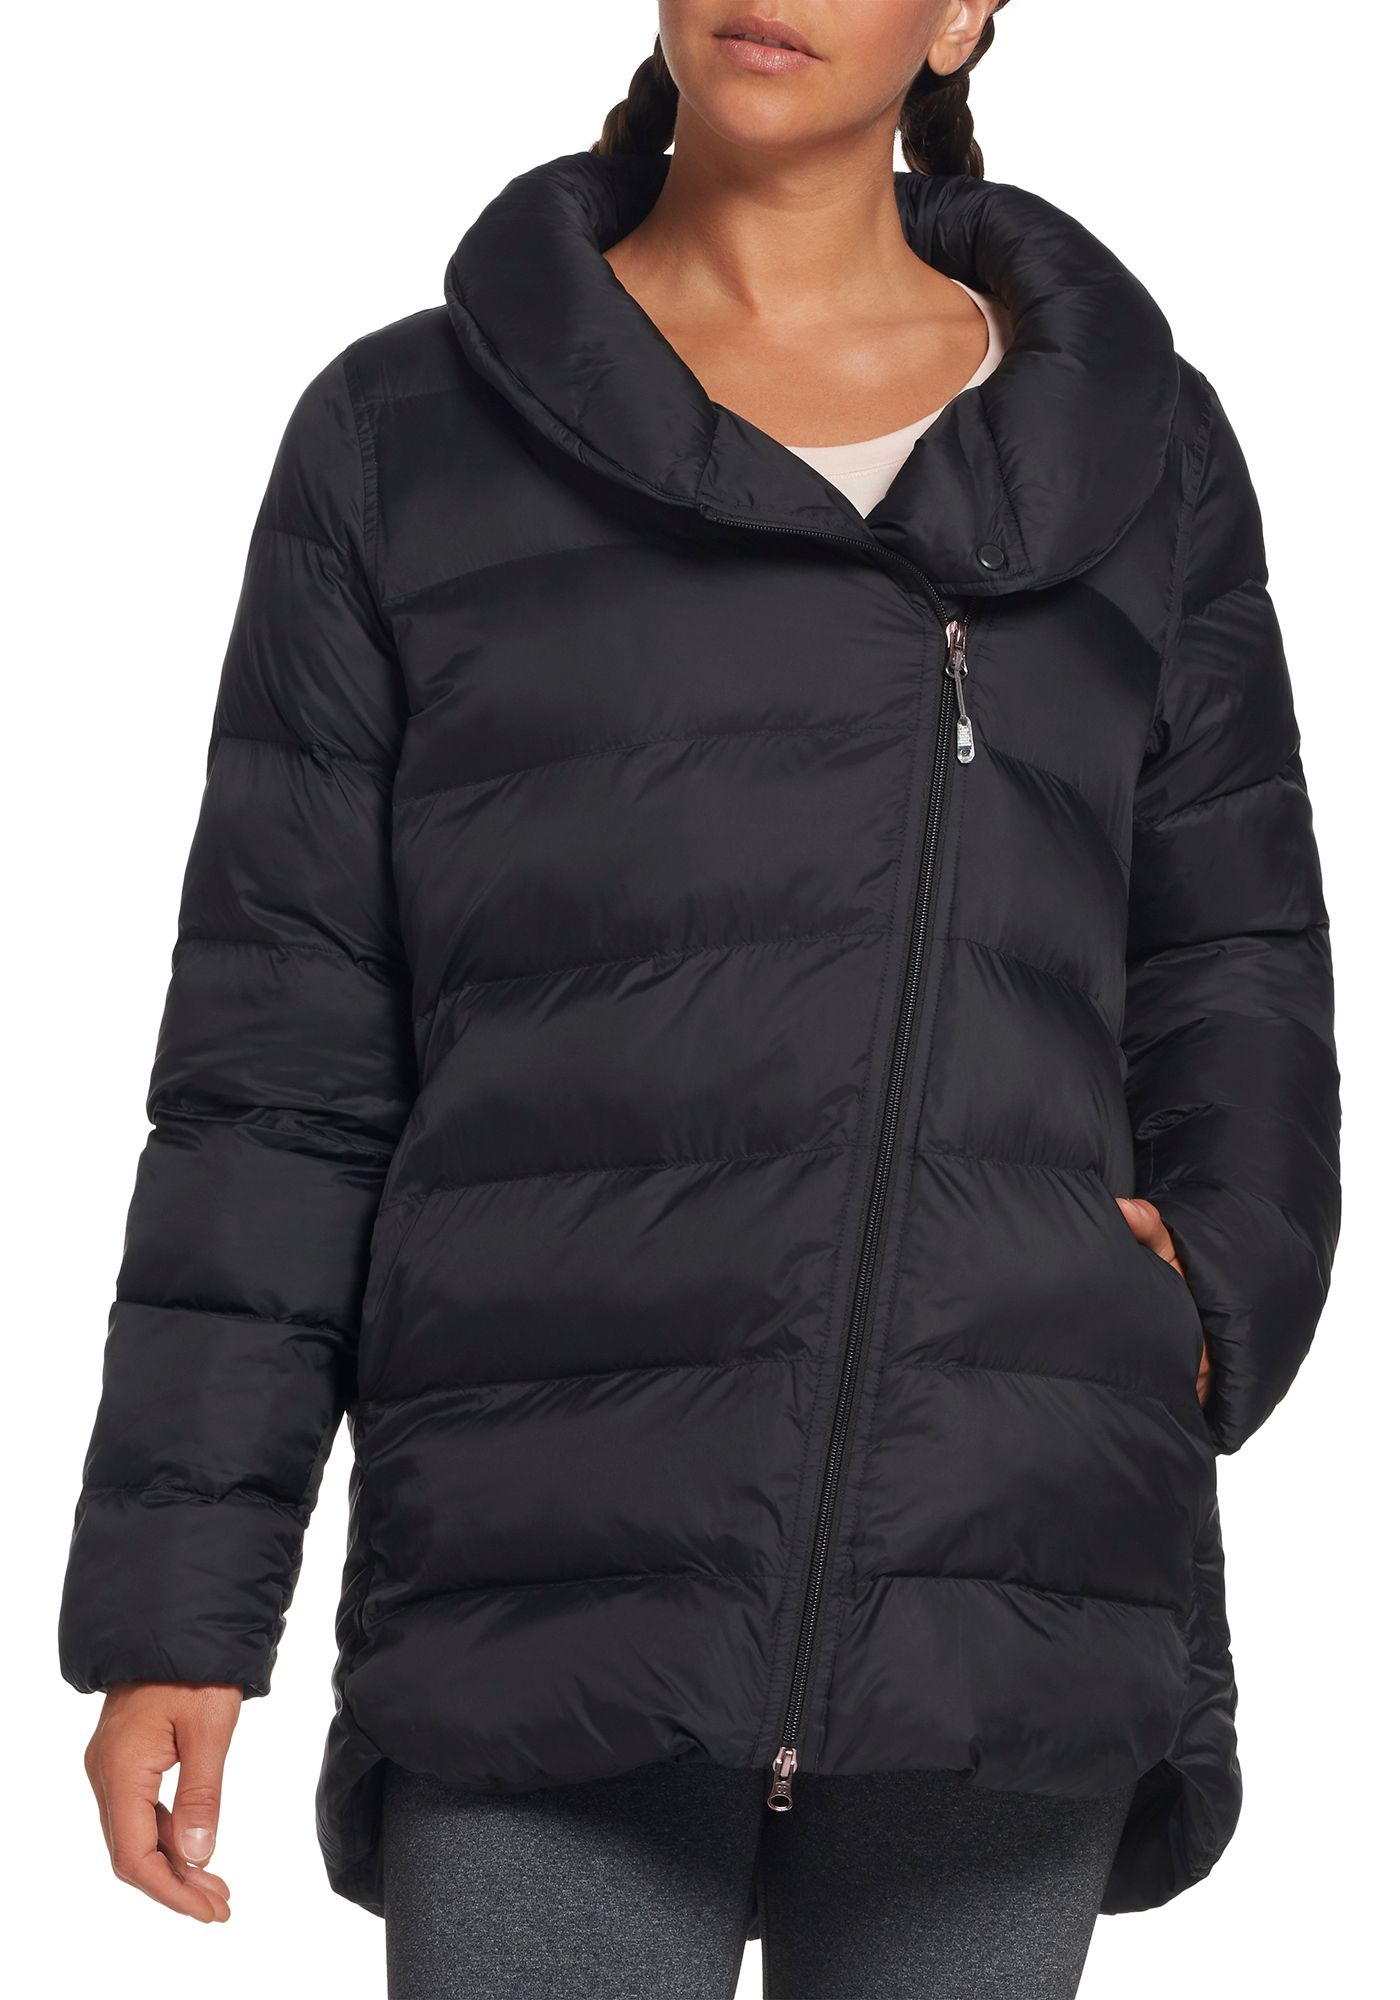 CALIA by Carrie Underwood Women's Puffy Outerwear Jacket